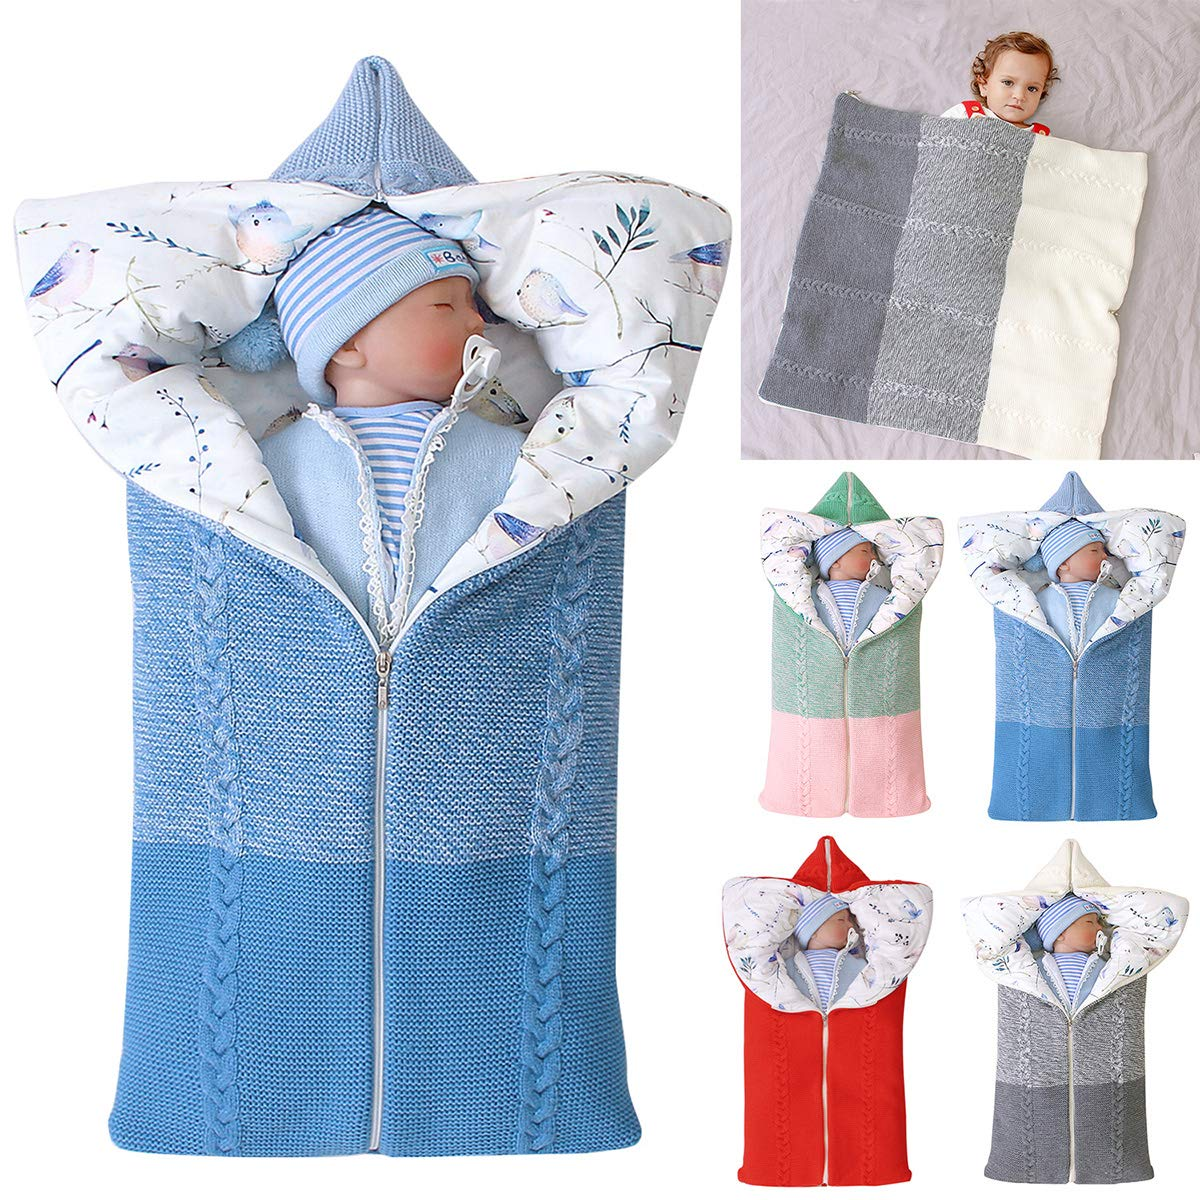 7 . Baby Swaddle Blanket Stroller Wrap,Soft Thick